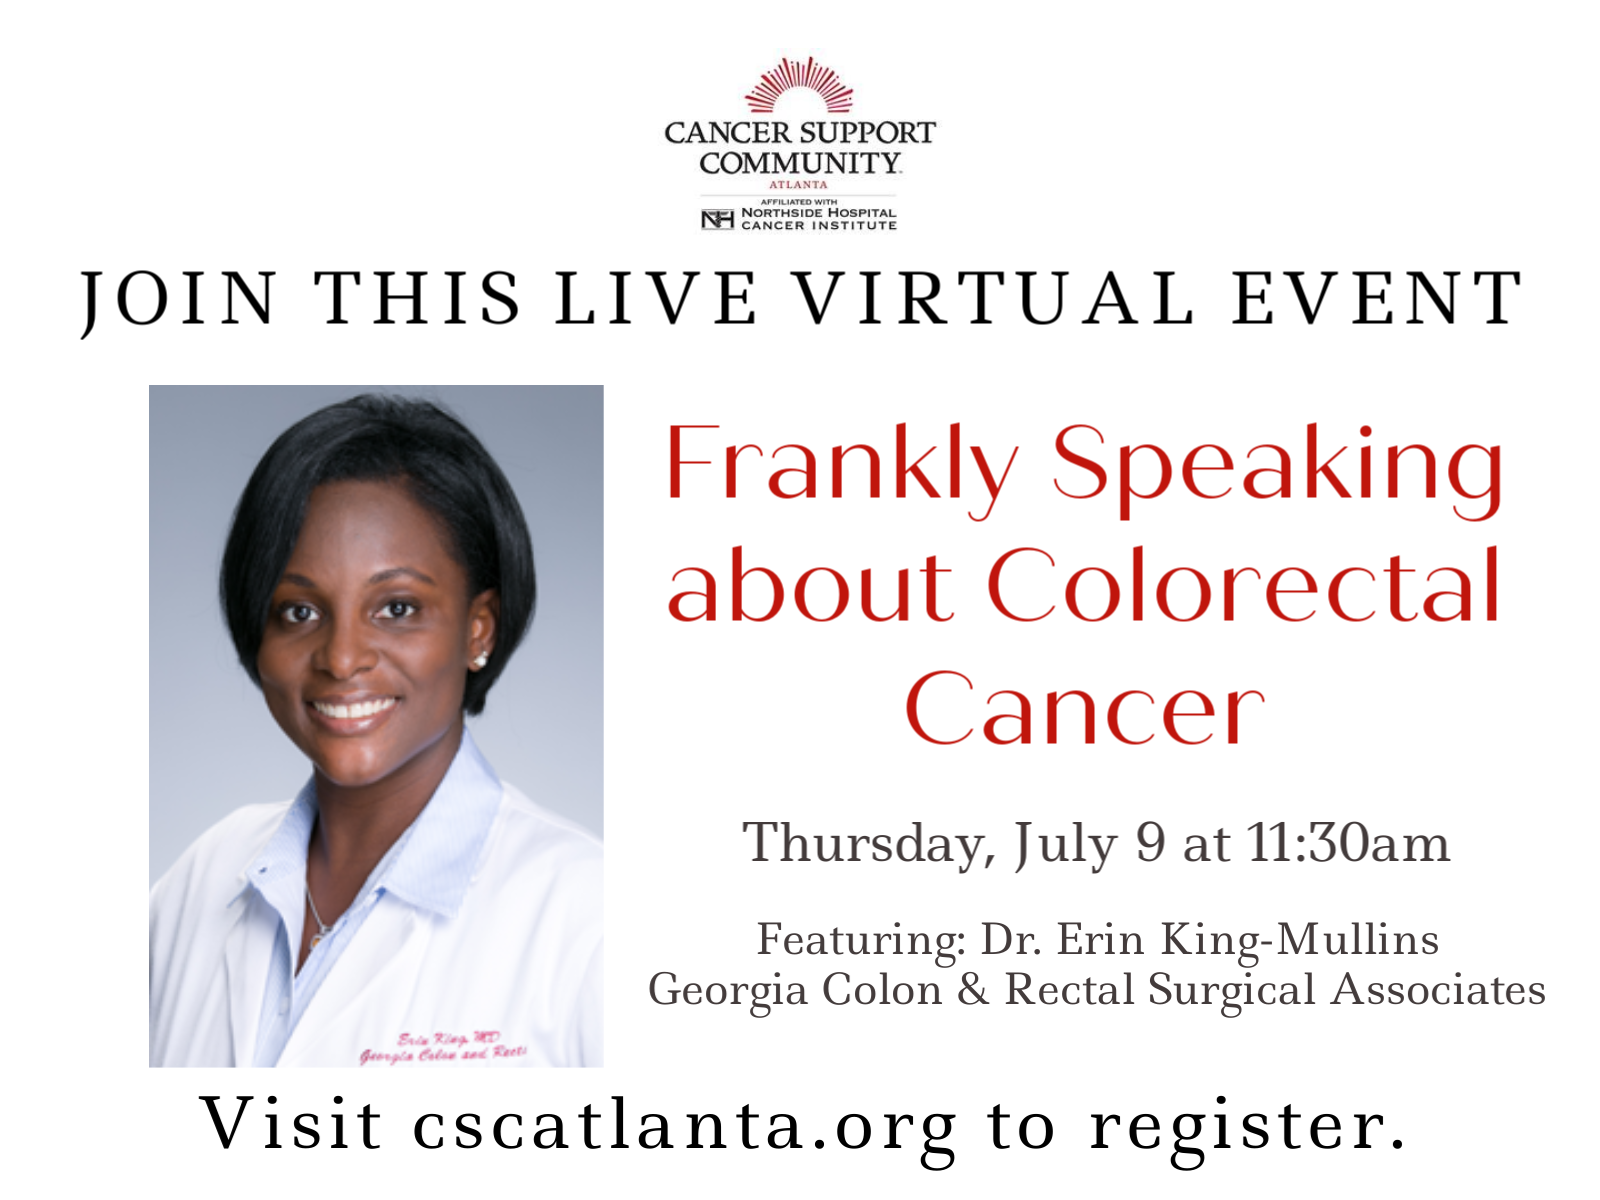 Live Virtual Event - Frankly Speaking about Colorectal Cancer